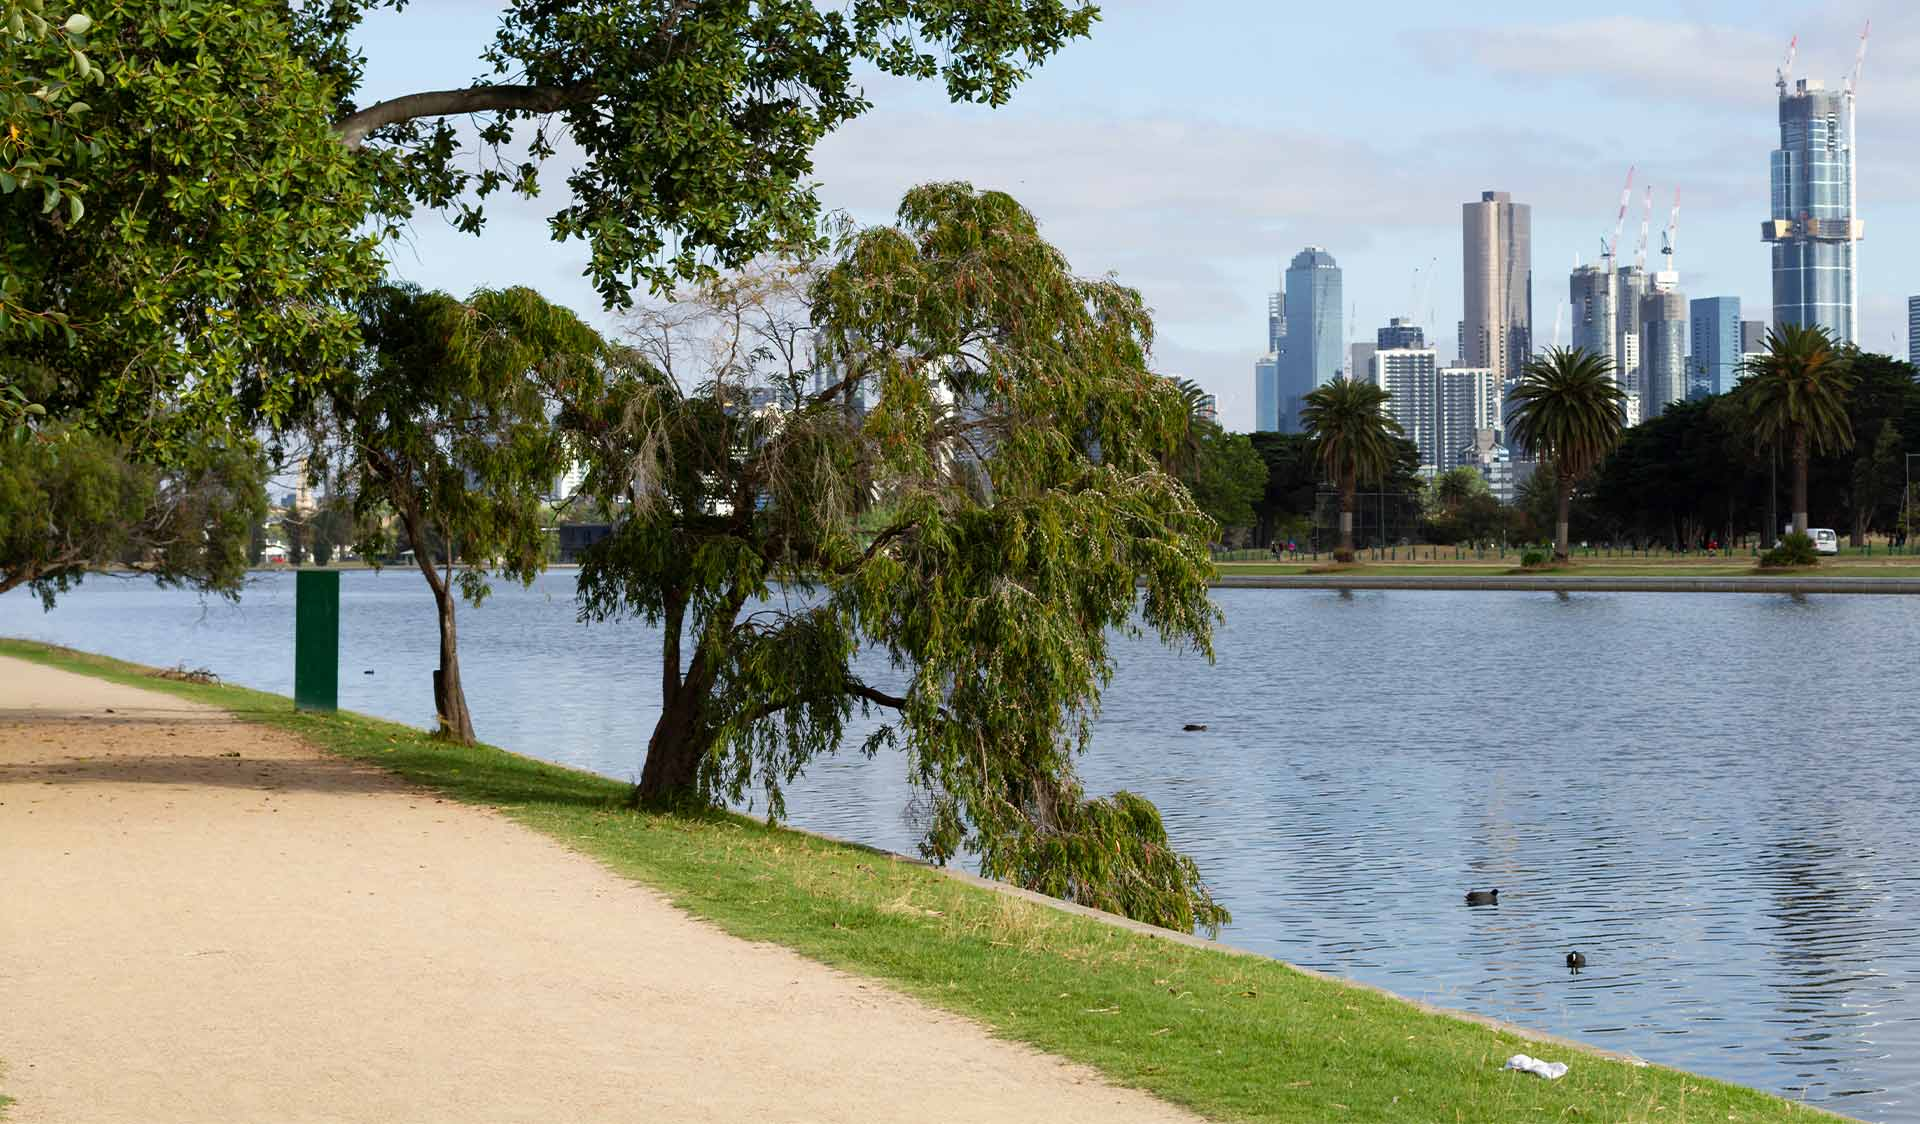 A walking path alongside Albert Park Lake with the Melbourne CBD skyline in the background